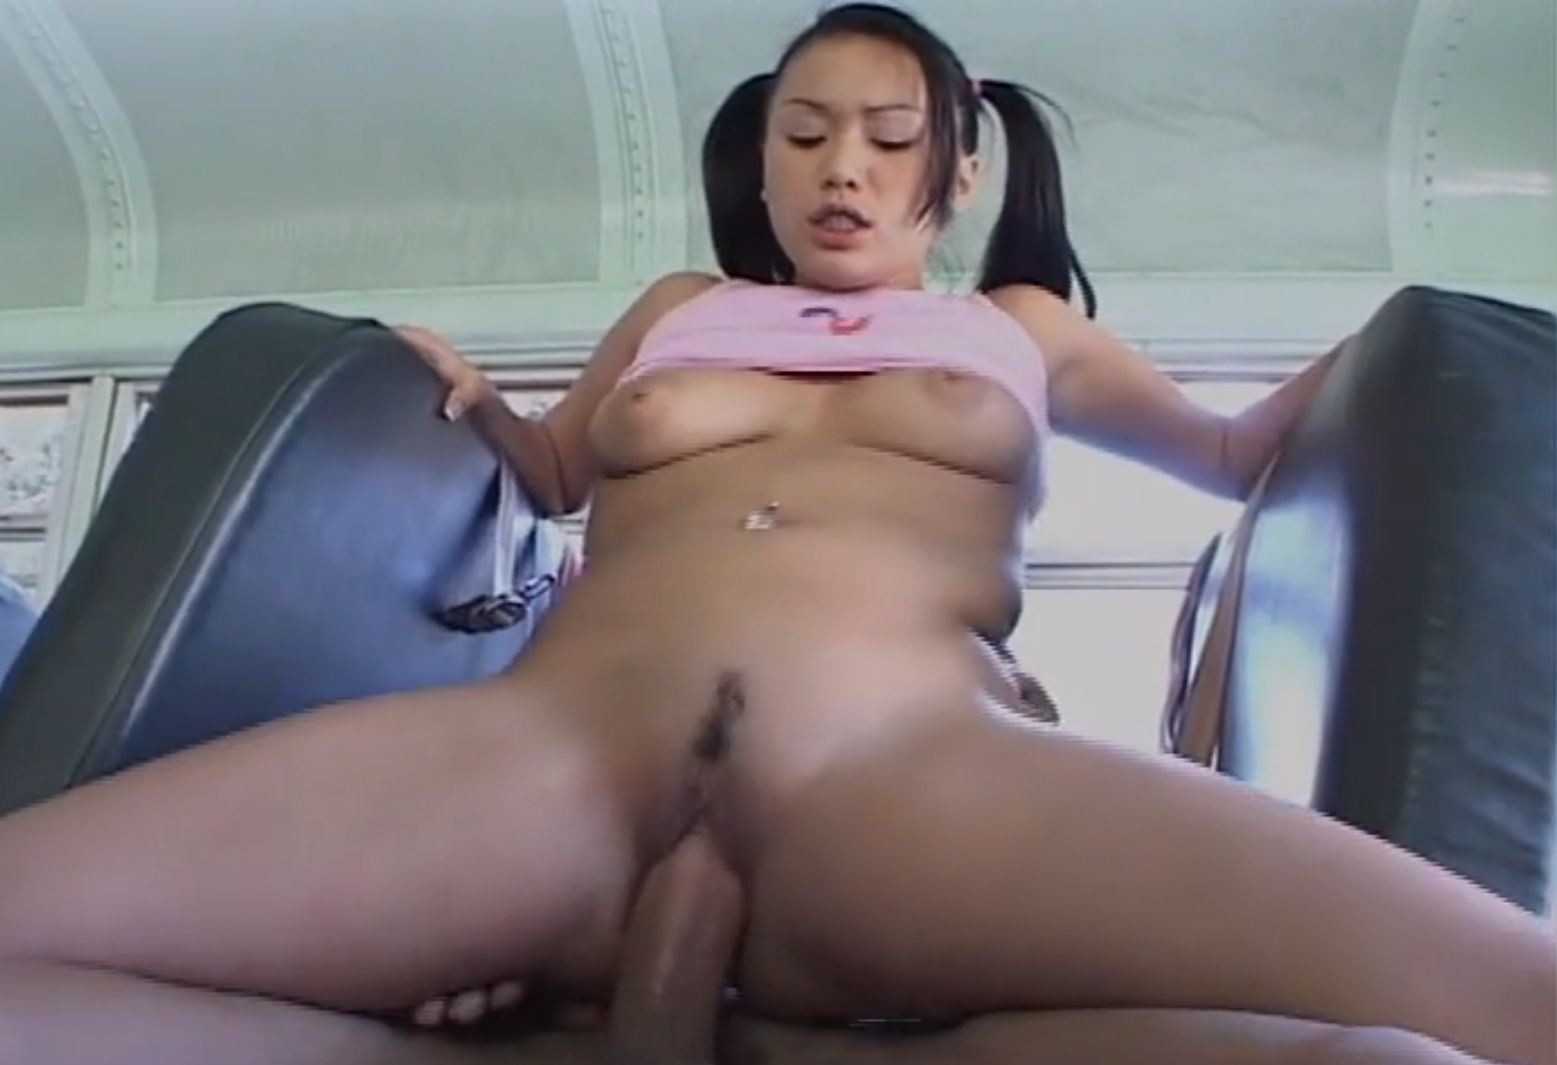 Free sick girl porn video you